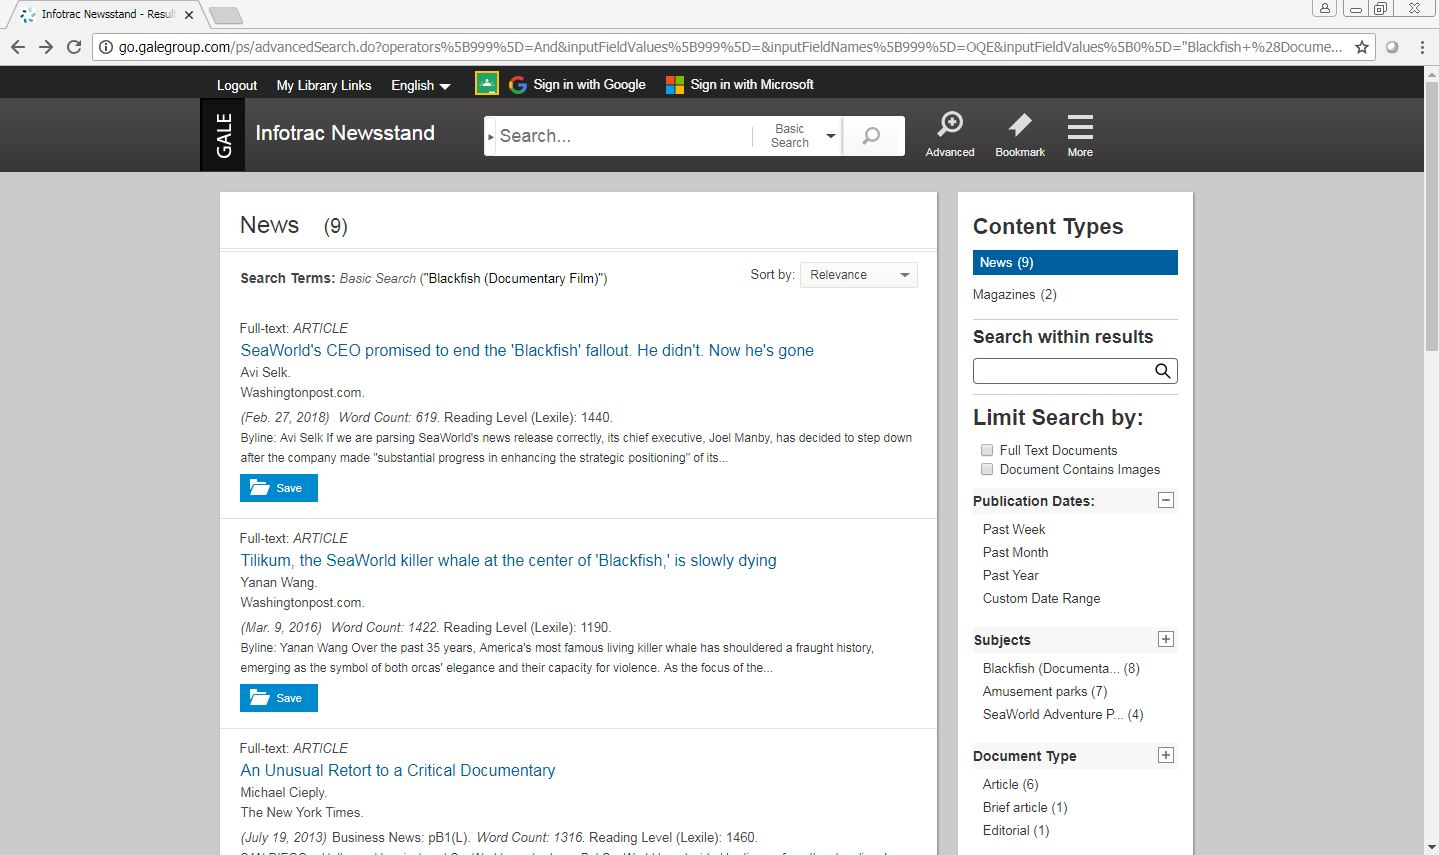 Infotrac Newsstand Search Results